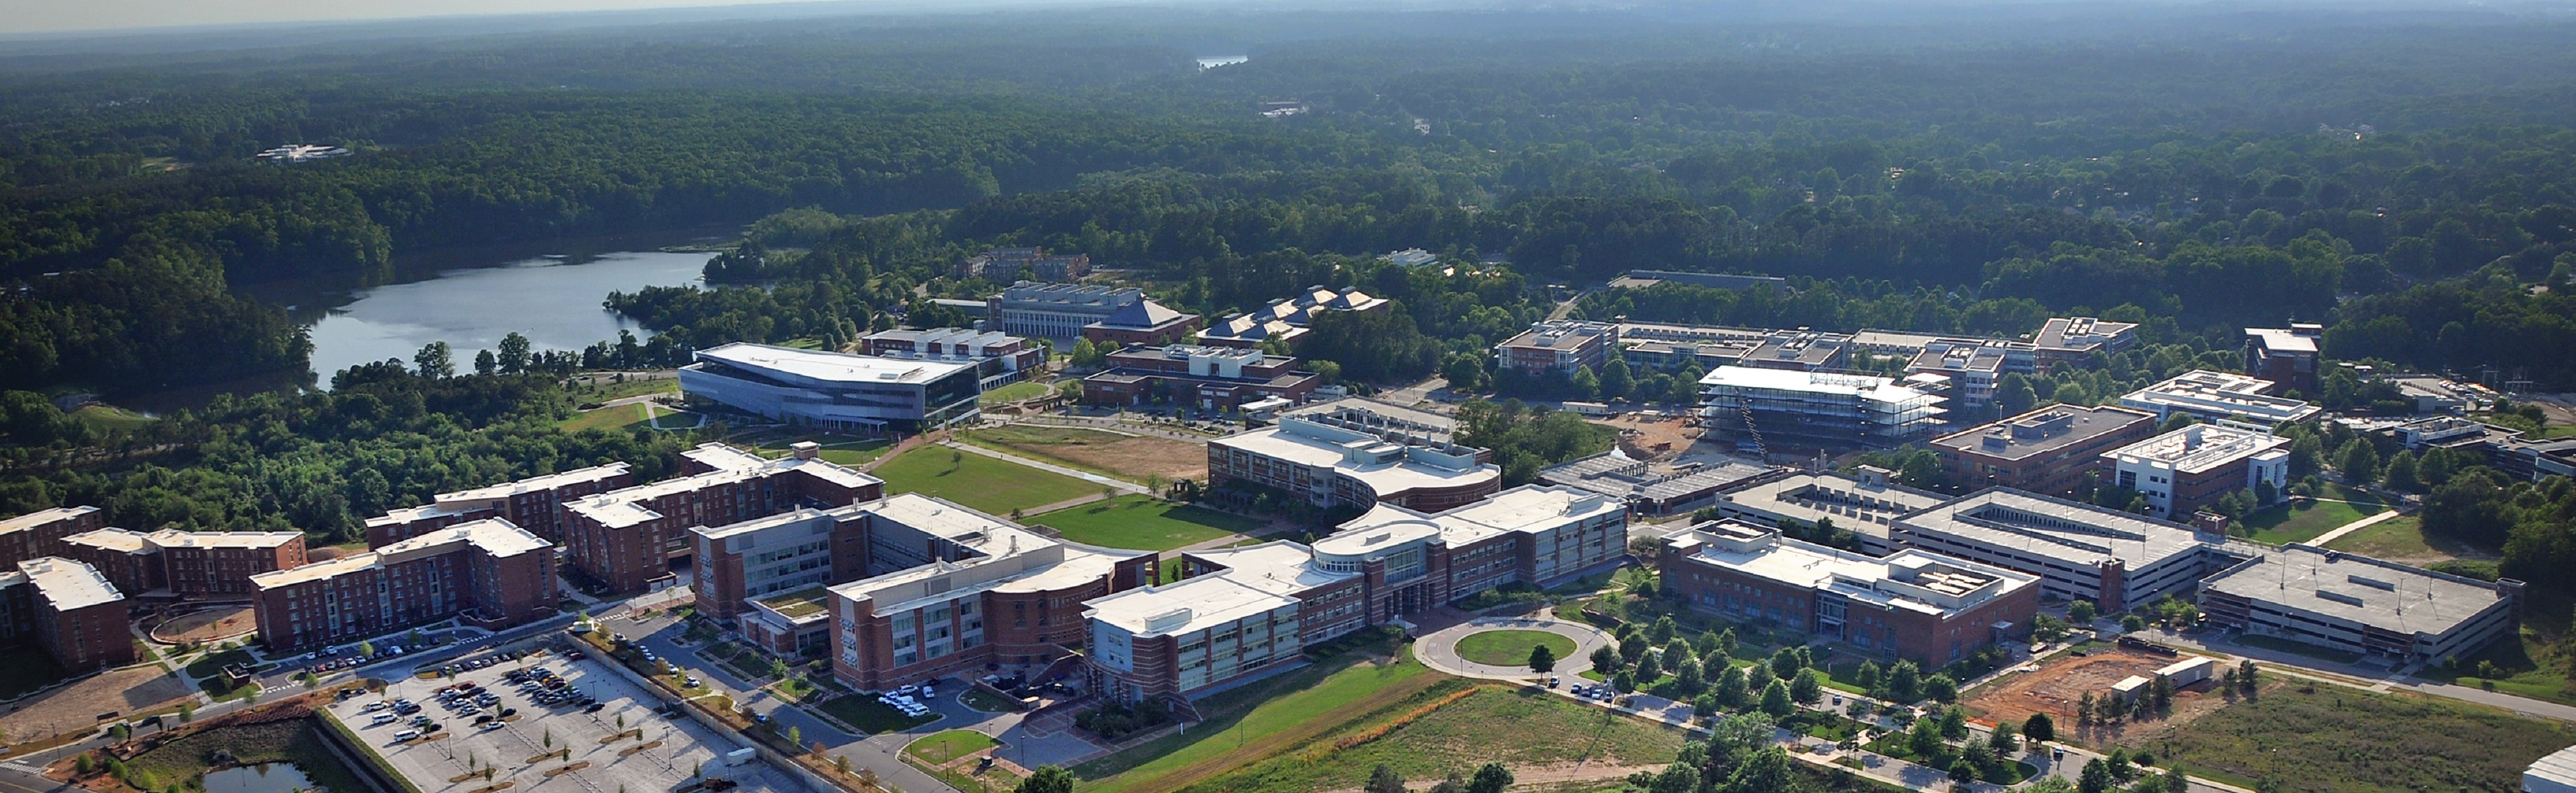 Centennial Campus, looking southwest.